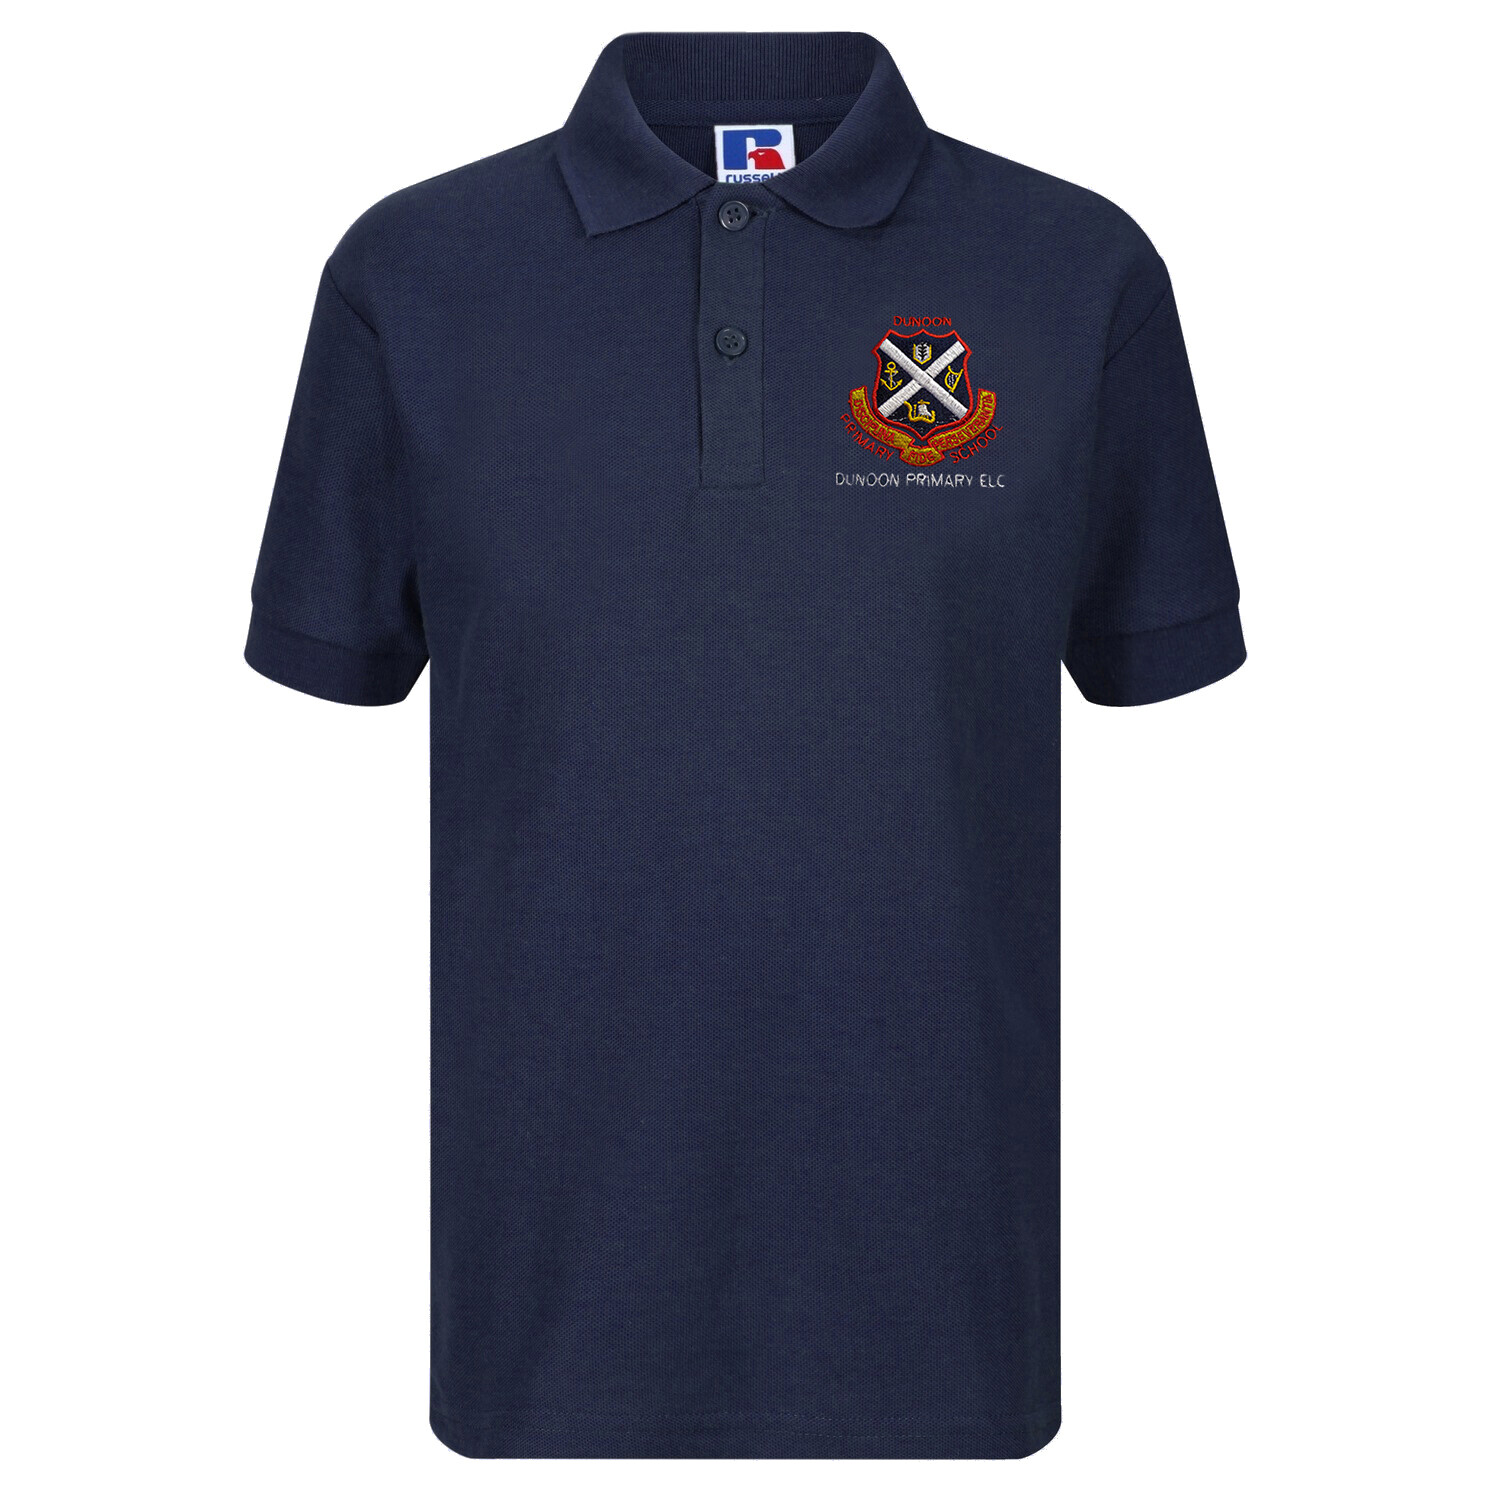 Dunoon Primary ELC Nursery Staff Polo (Unisex) (RCS539M)